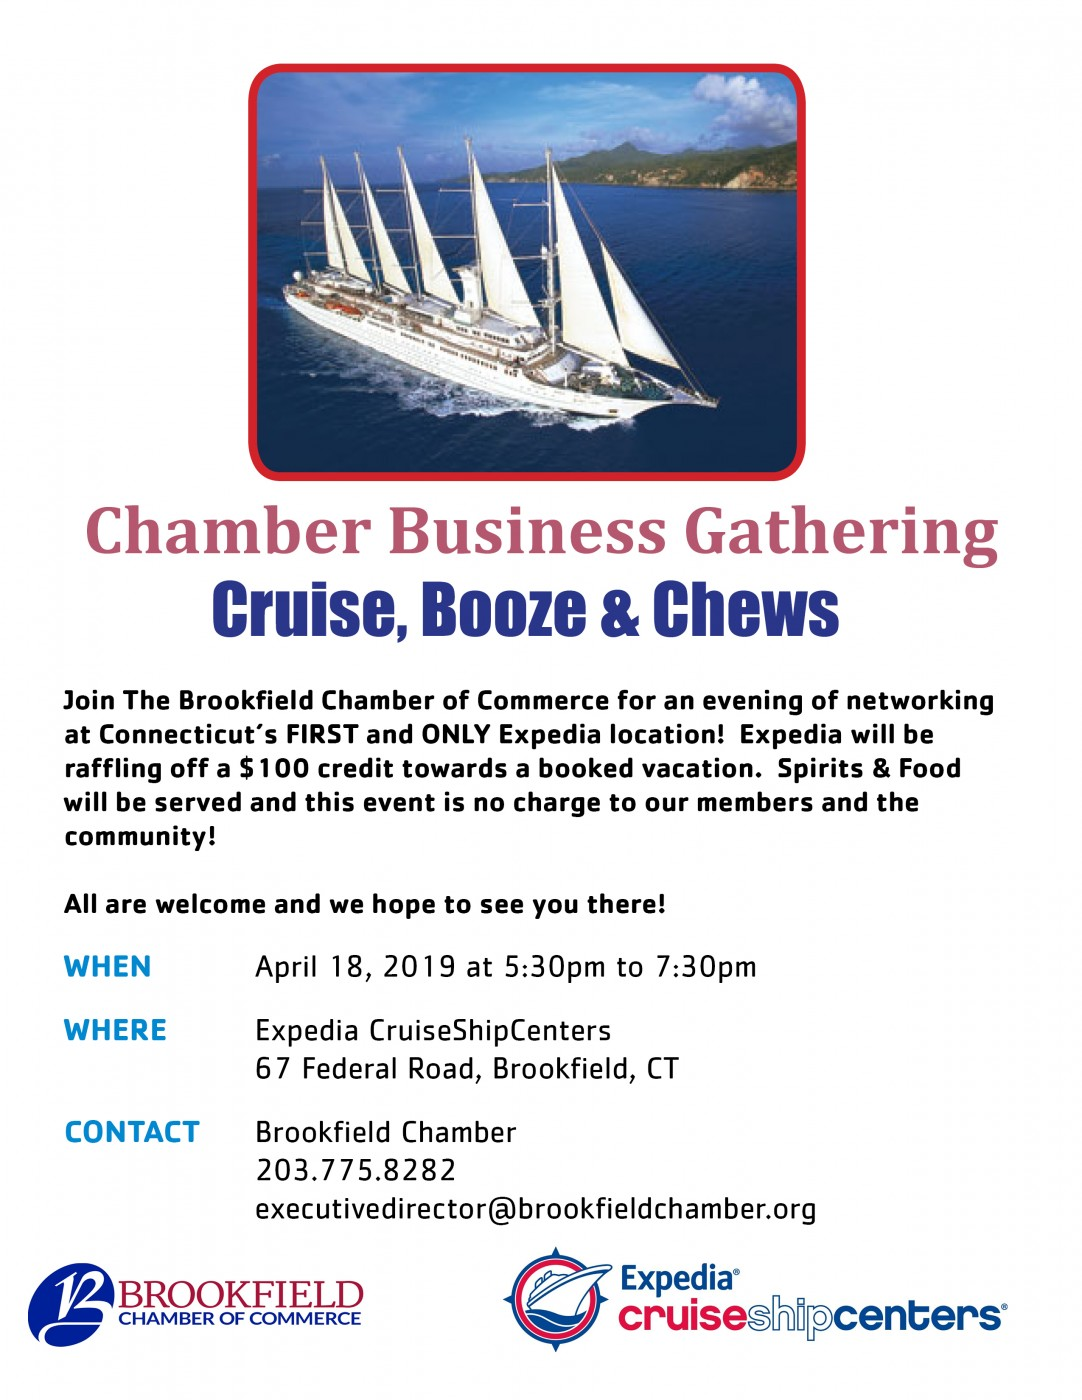 Cruise, Booze & Chews - Join The Brookfield Chamber of Commerce for an evening of networking at Connecticut's FIRST and ONLY Expedia location! Expedia will be raffling off a $100 credit towards a booked vacation. Spirits & Food will be served and this event is no charge to our members and the community! All are welcome and we hope to see you there!